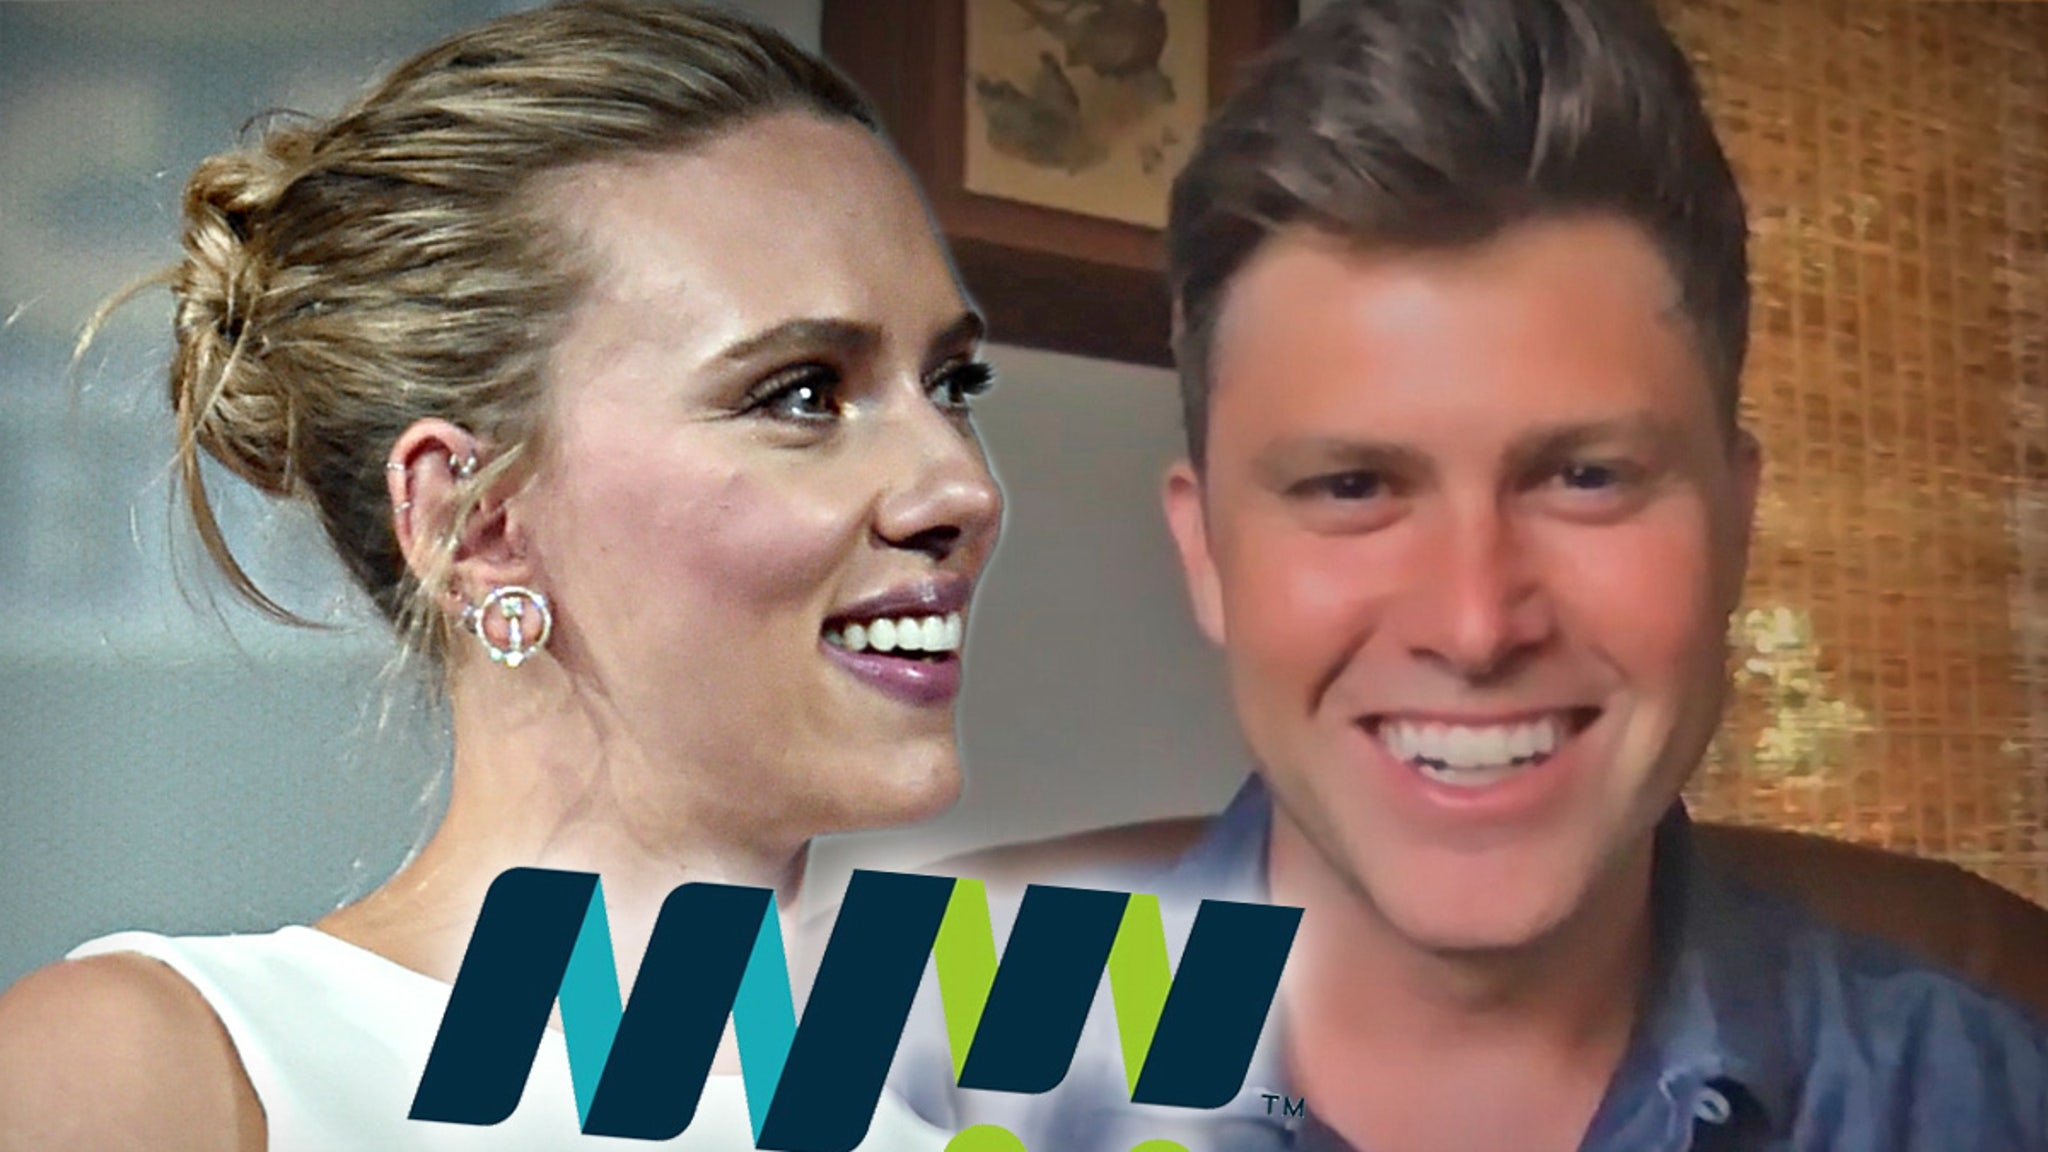 Scarlett Johansson, Colin Jost Wedding News Raises Money for Meals on Wheels